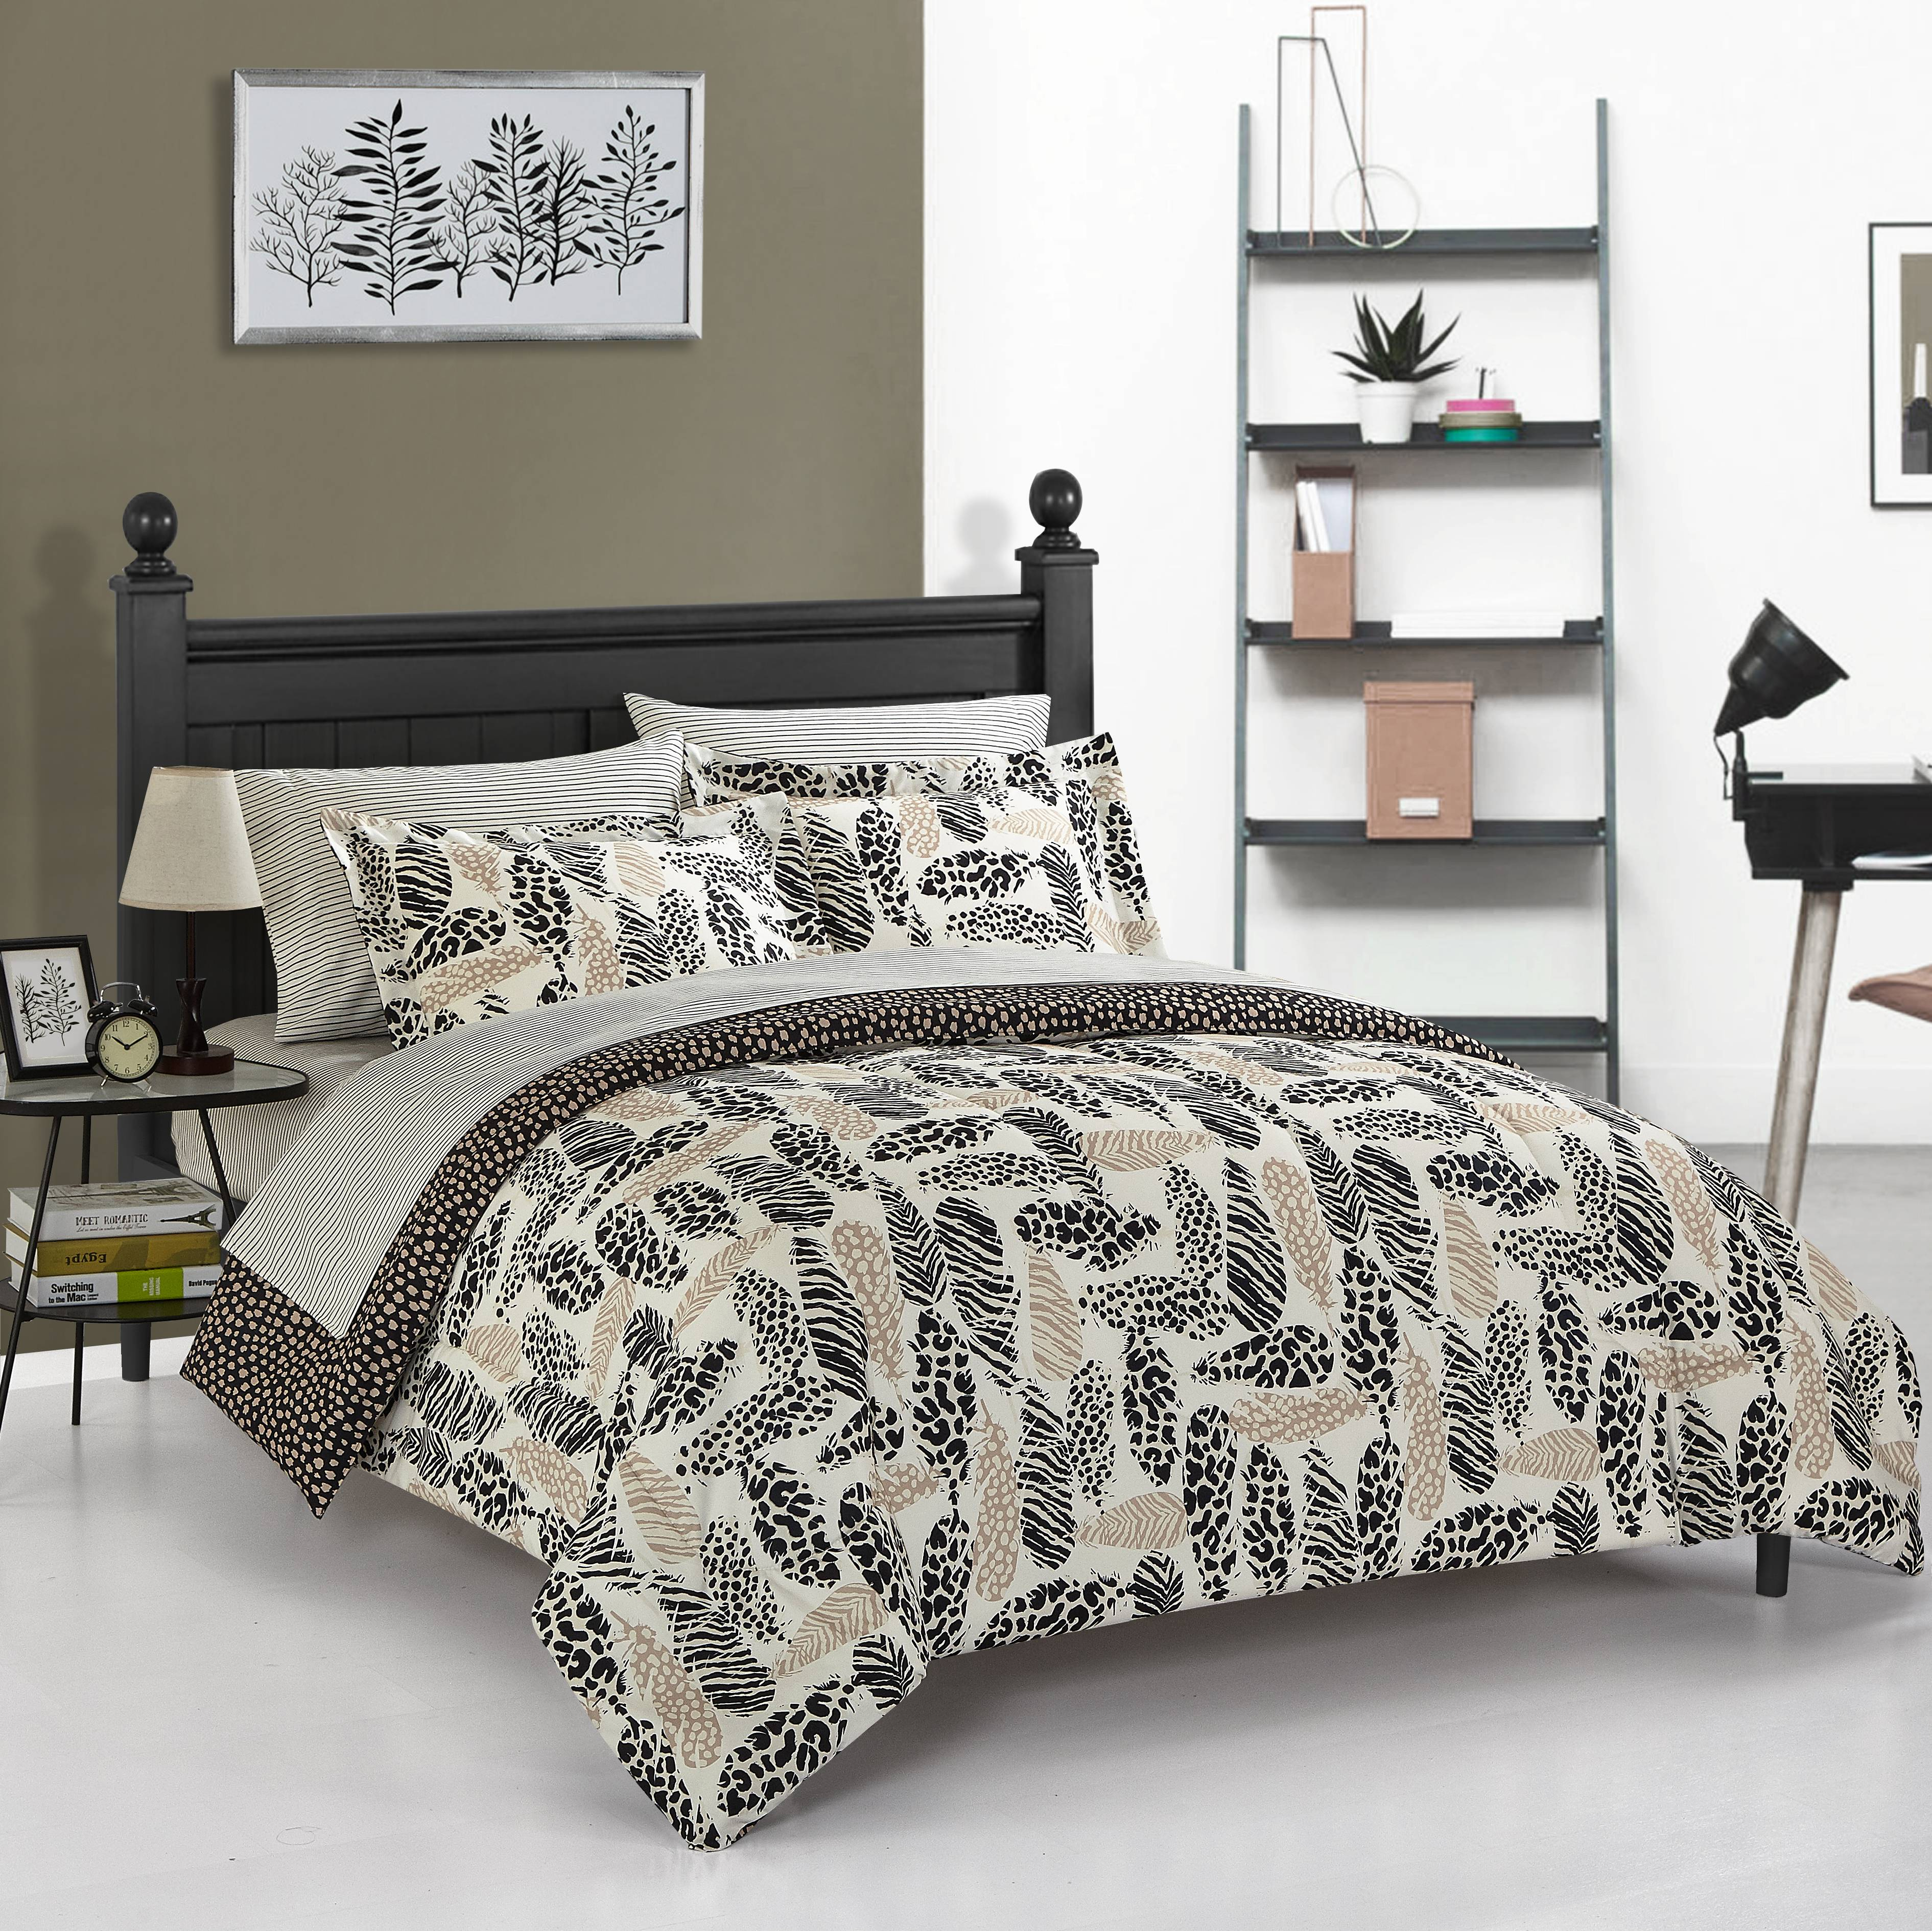 Your Zone Wild Fauna Metallic Feathers Bed in a Bag by Idea Nuova